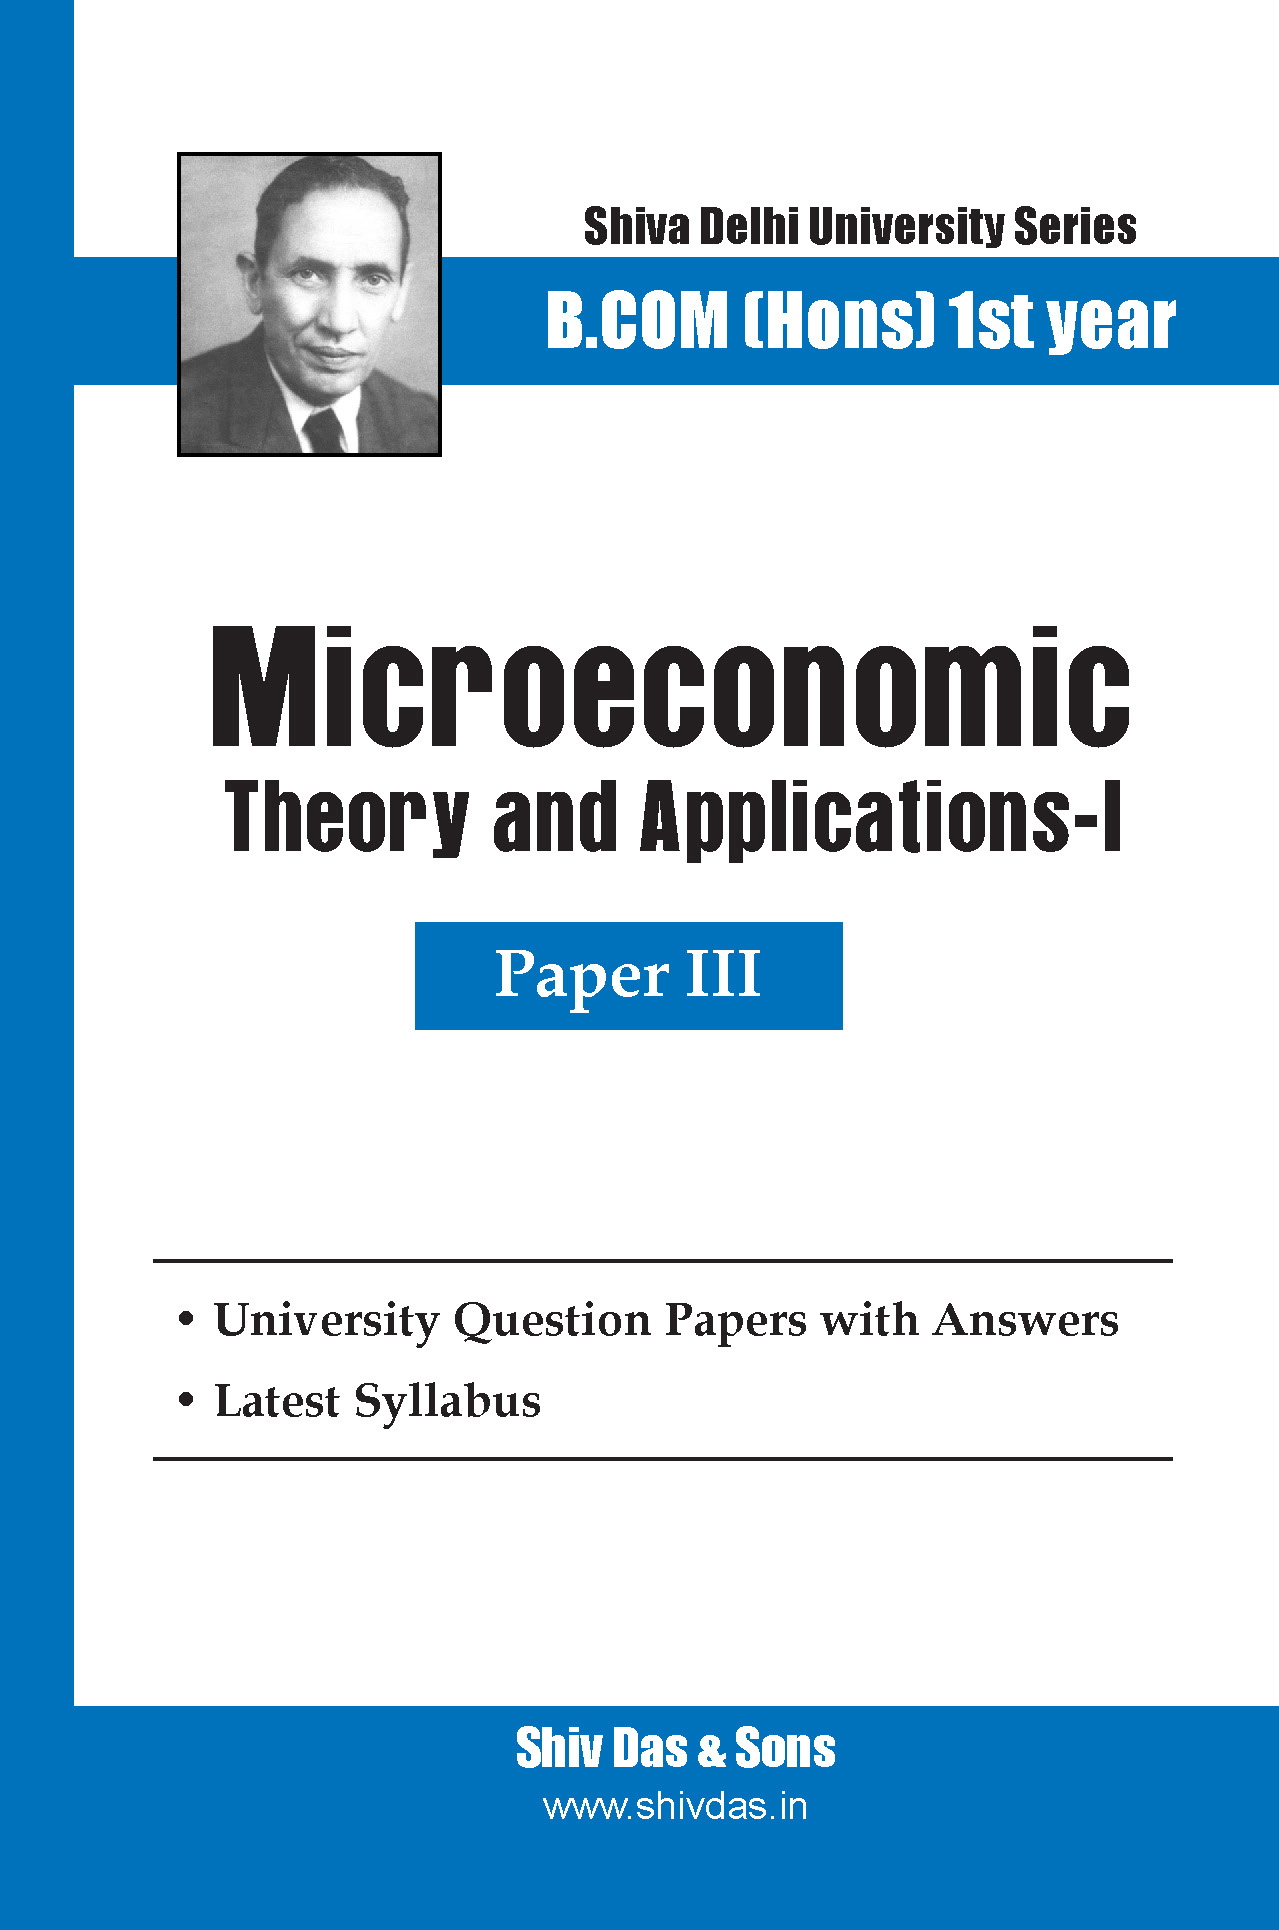 Microeconomics theory and Applications-I for B.Com Hons SOL/External 1st Year